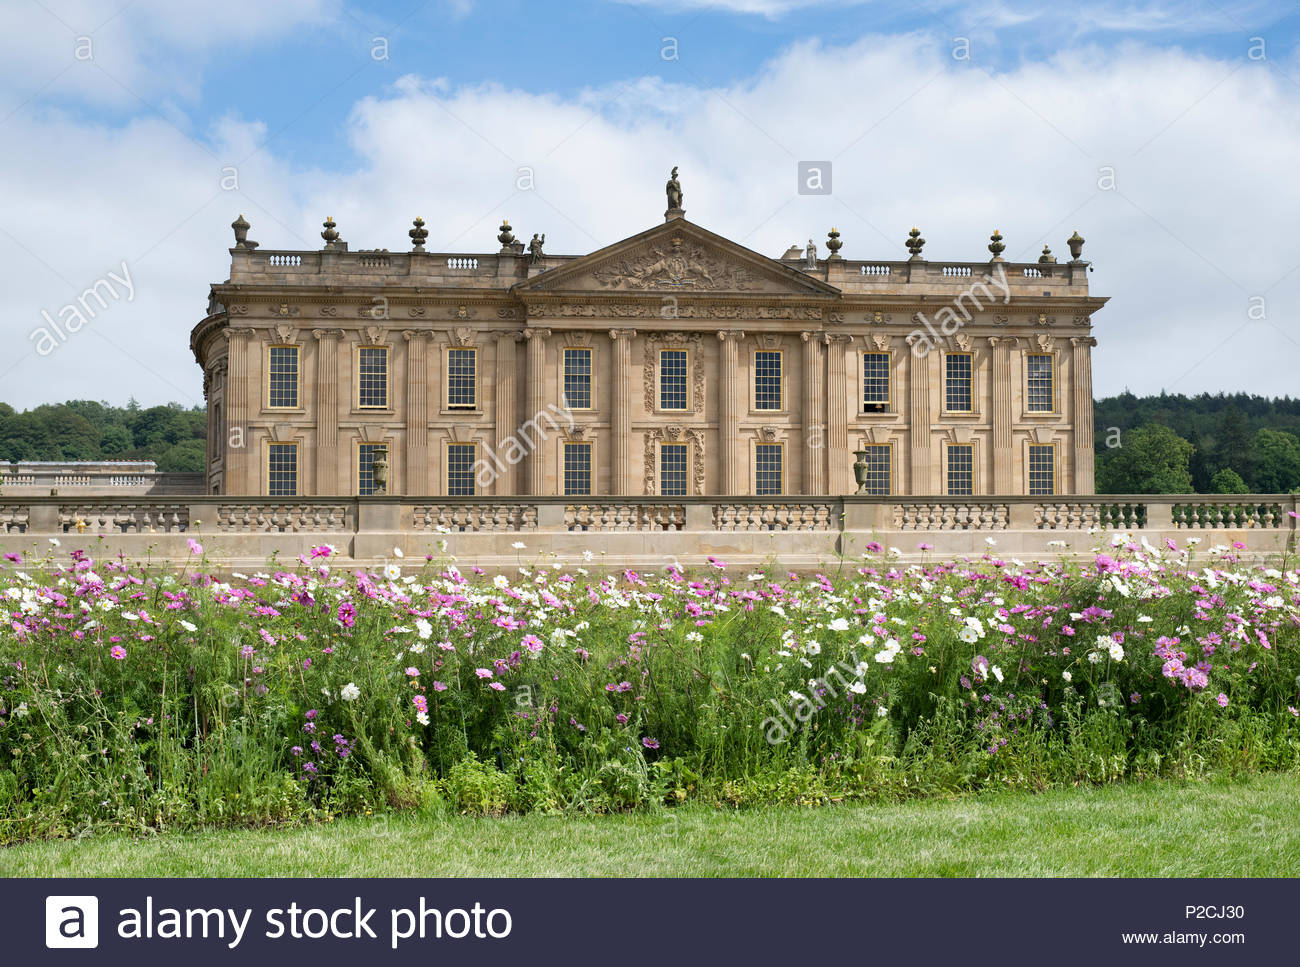 Chatsworth house. RHS Chatsworth flower show 2018. Chatsworth, Bakewell, Derbyshire, UK - Stock Image